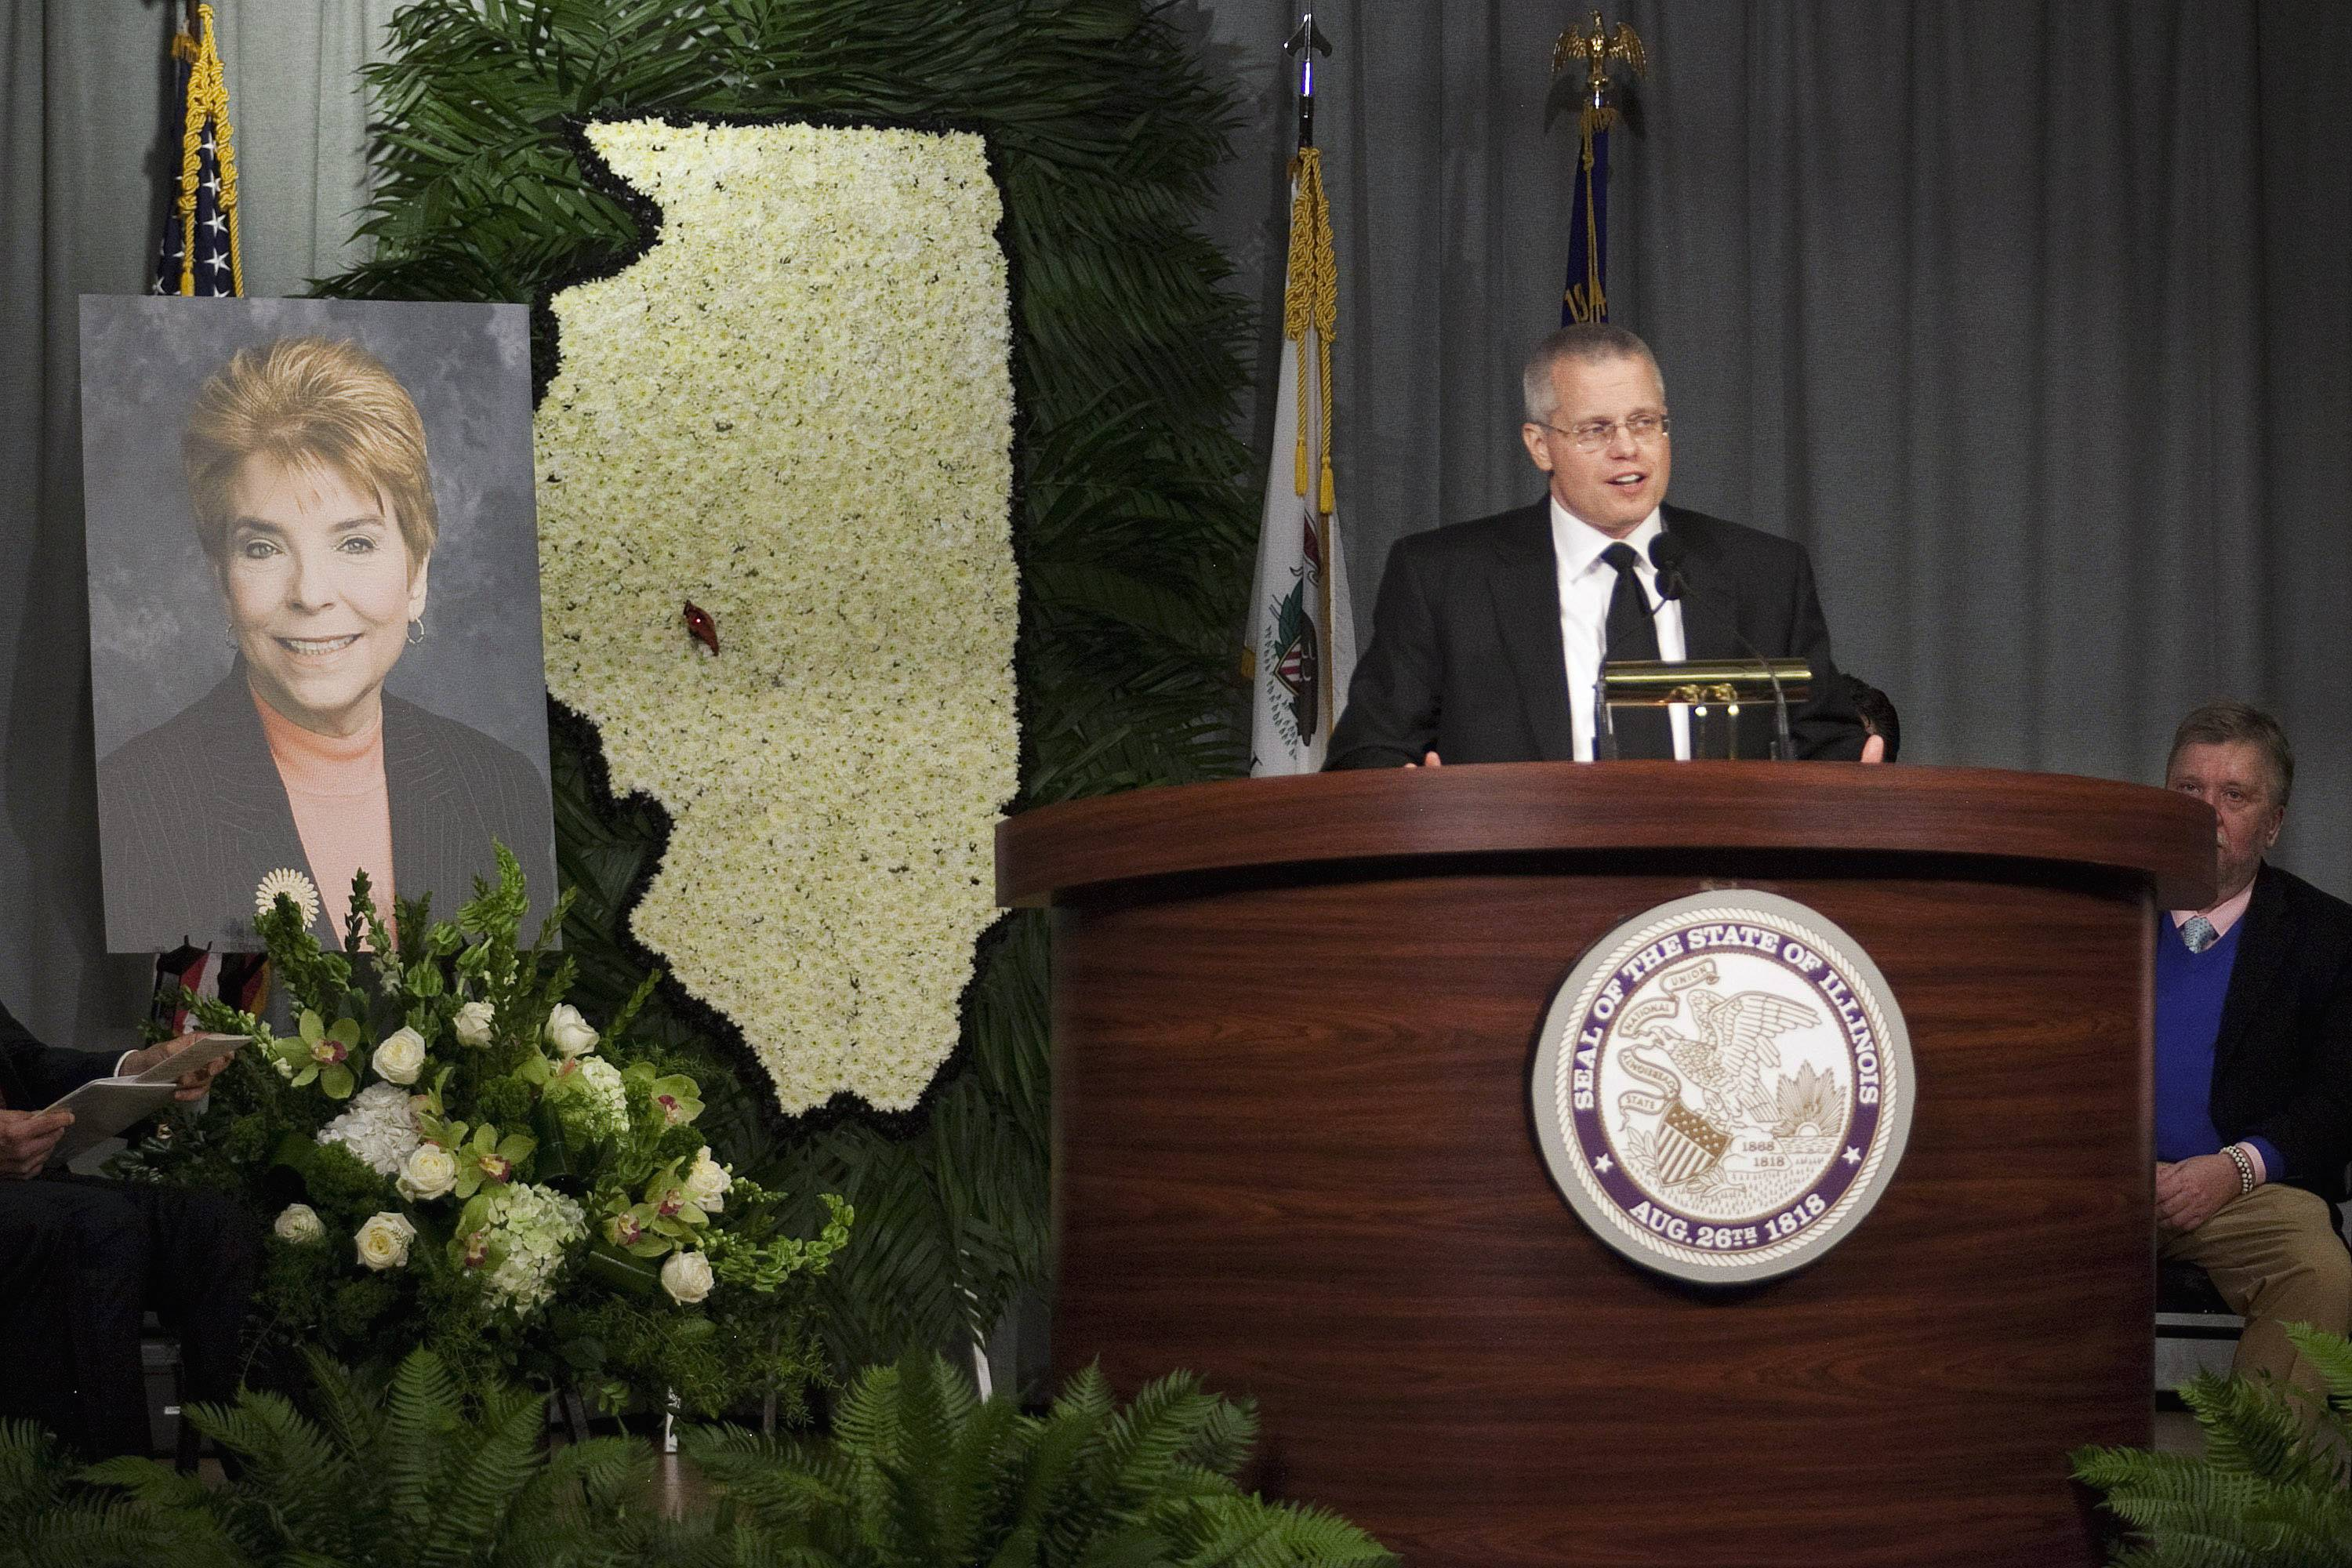 Joseph Topinka, son of late Illinois Comptroller Judy Baar Topinka, speaks during a public memorial for his mother in December 2014.